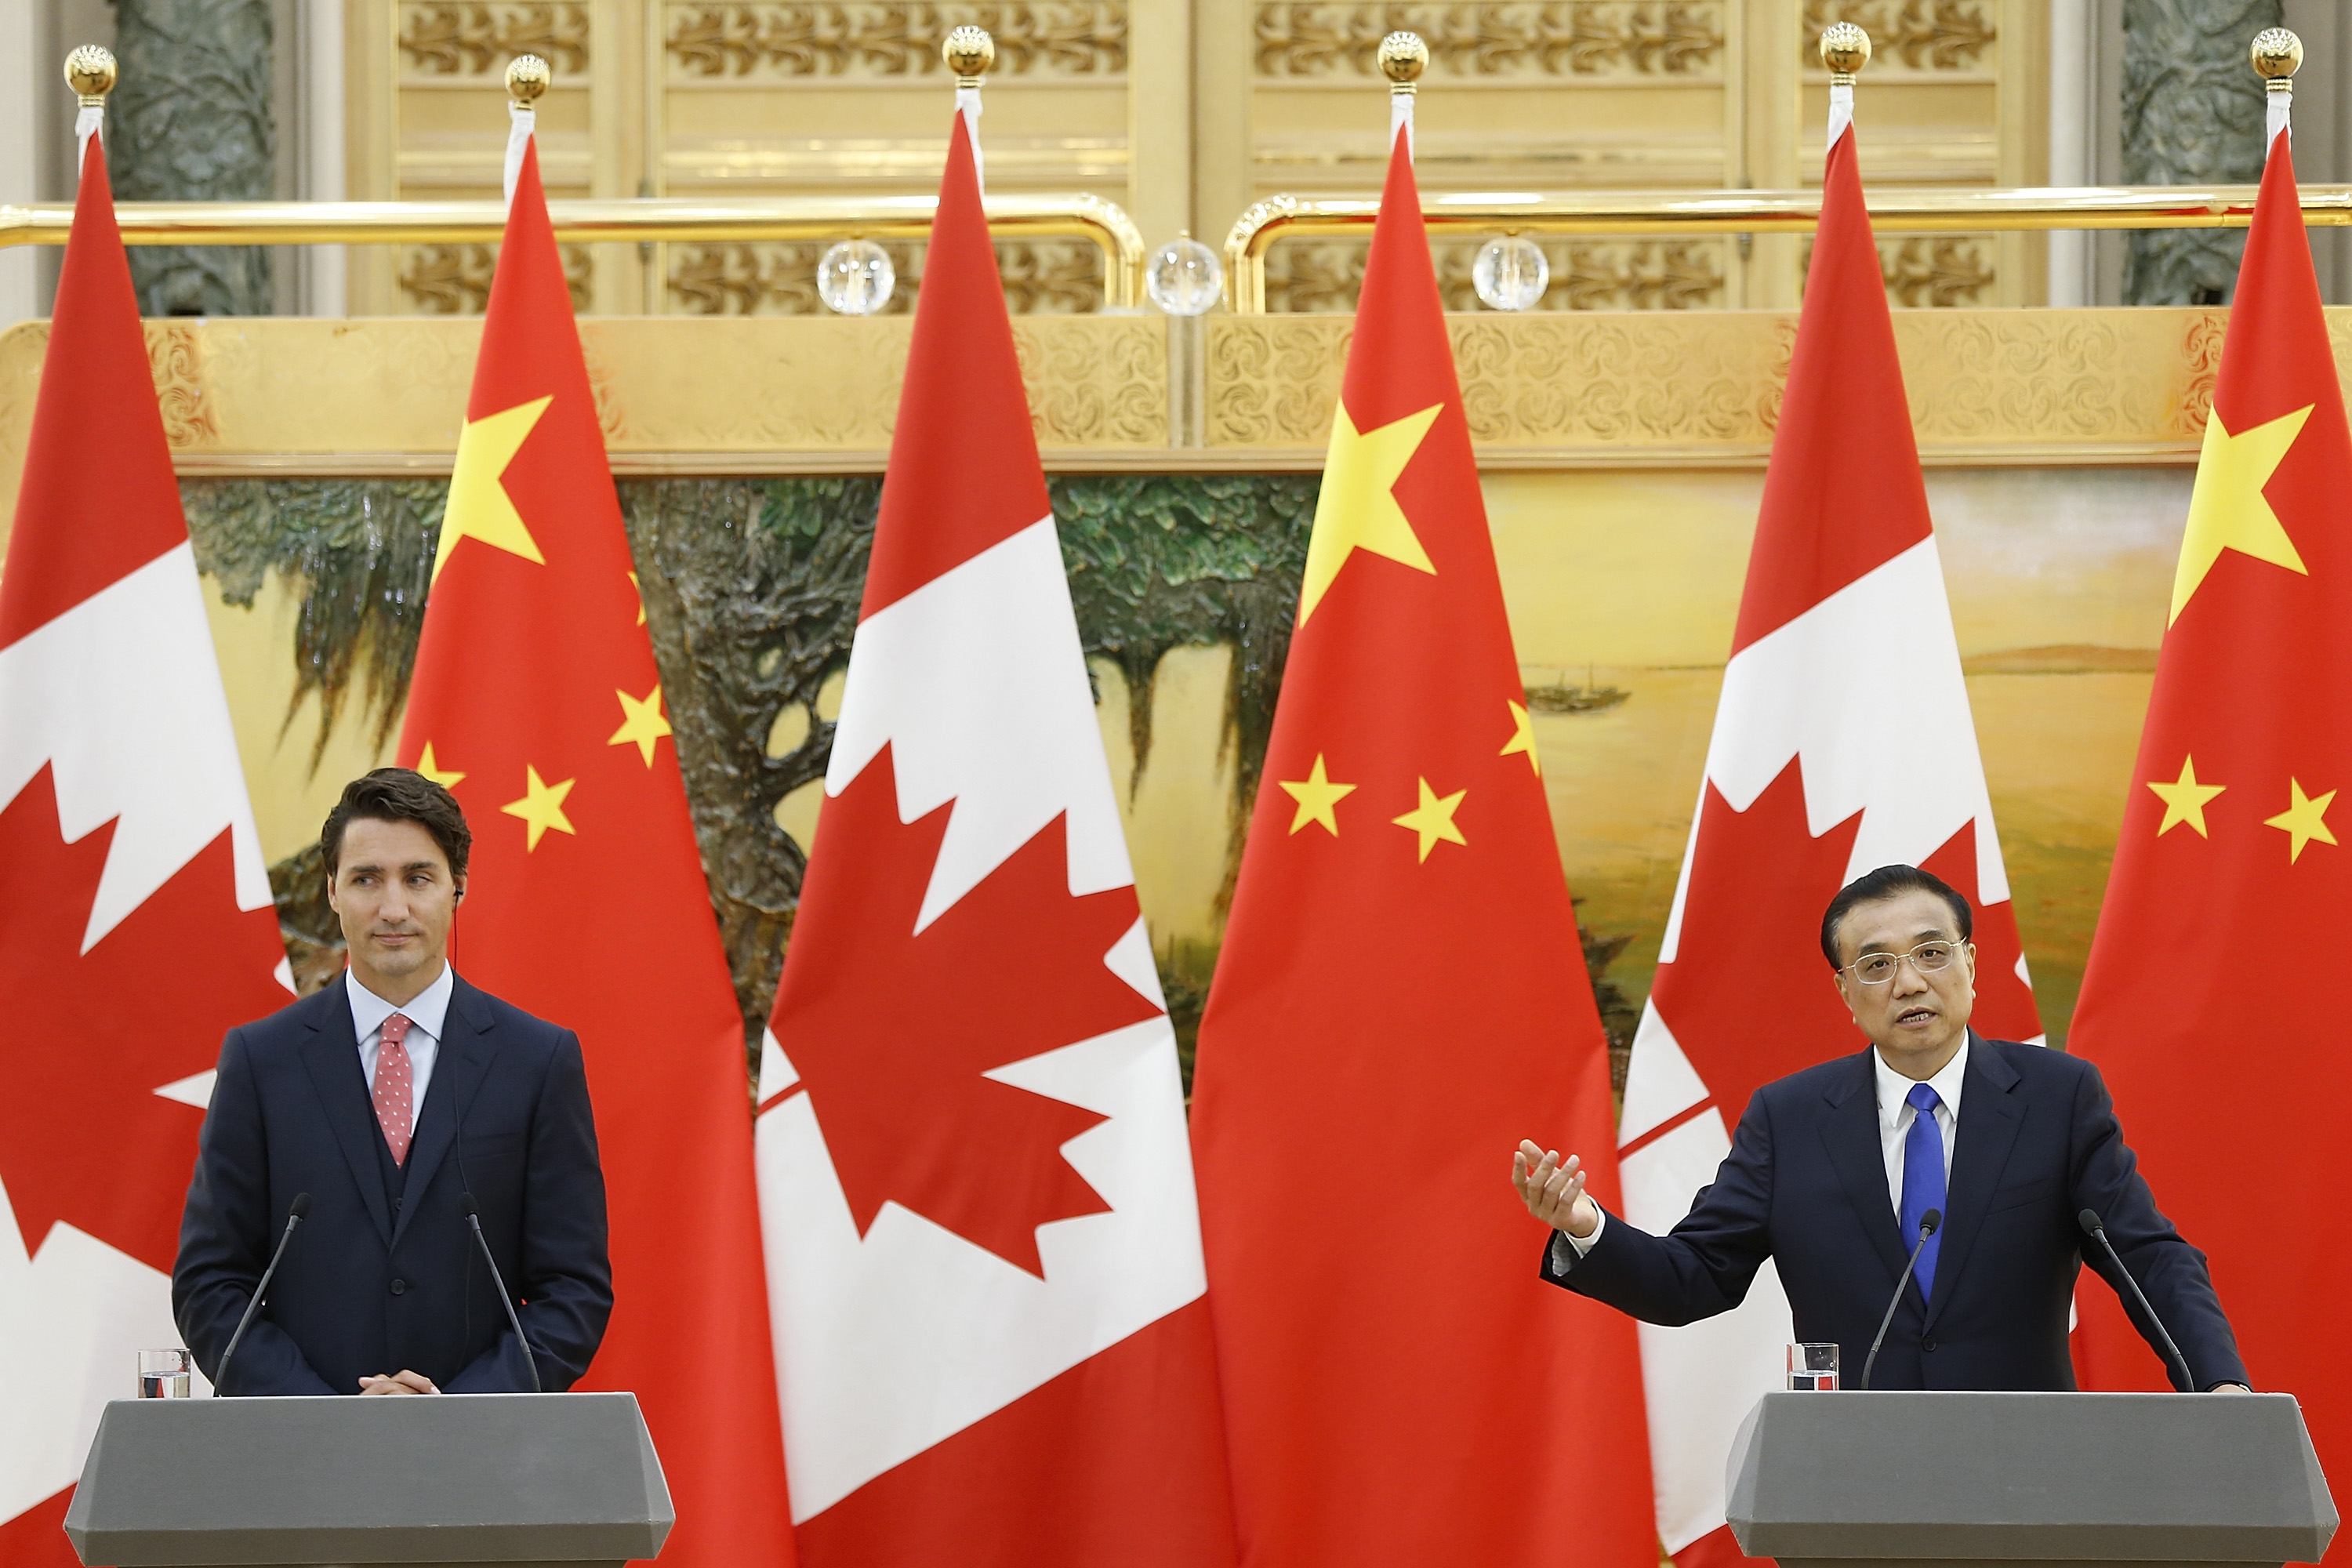 Trudeau Must Address Forced Organ Harvesting With Chinese Premier, Says Renowned Human Rights Lawyer